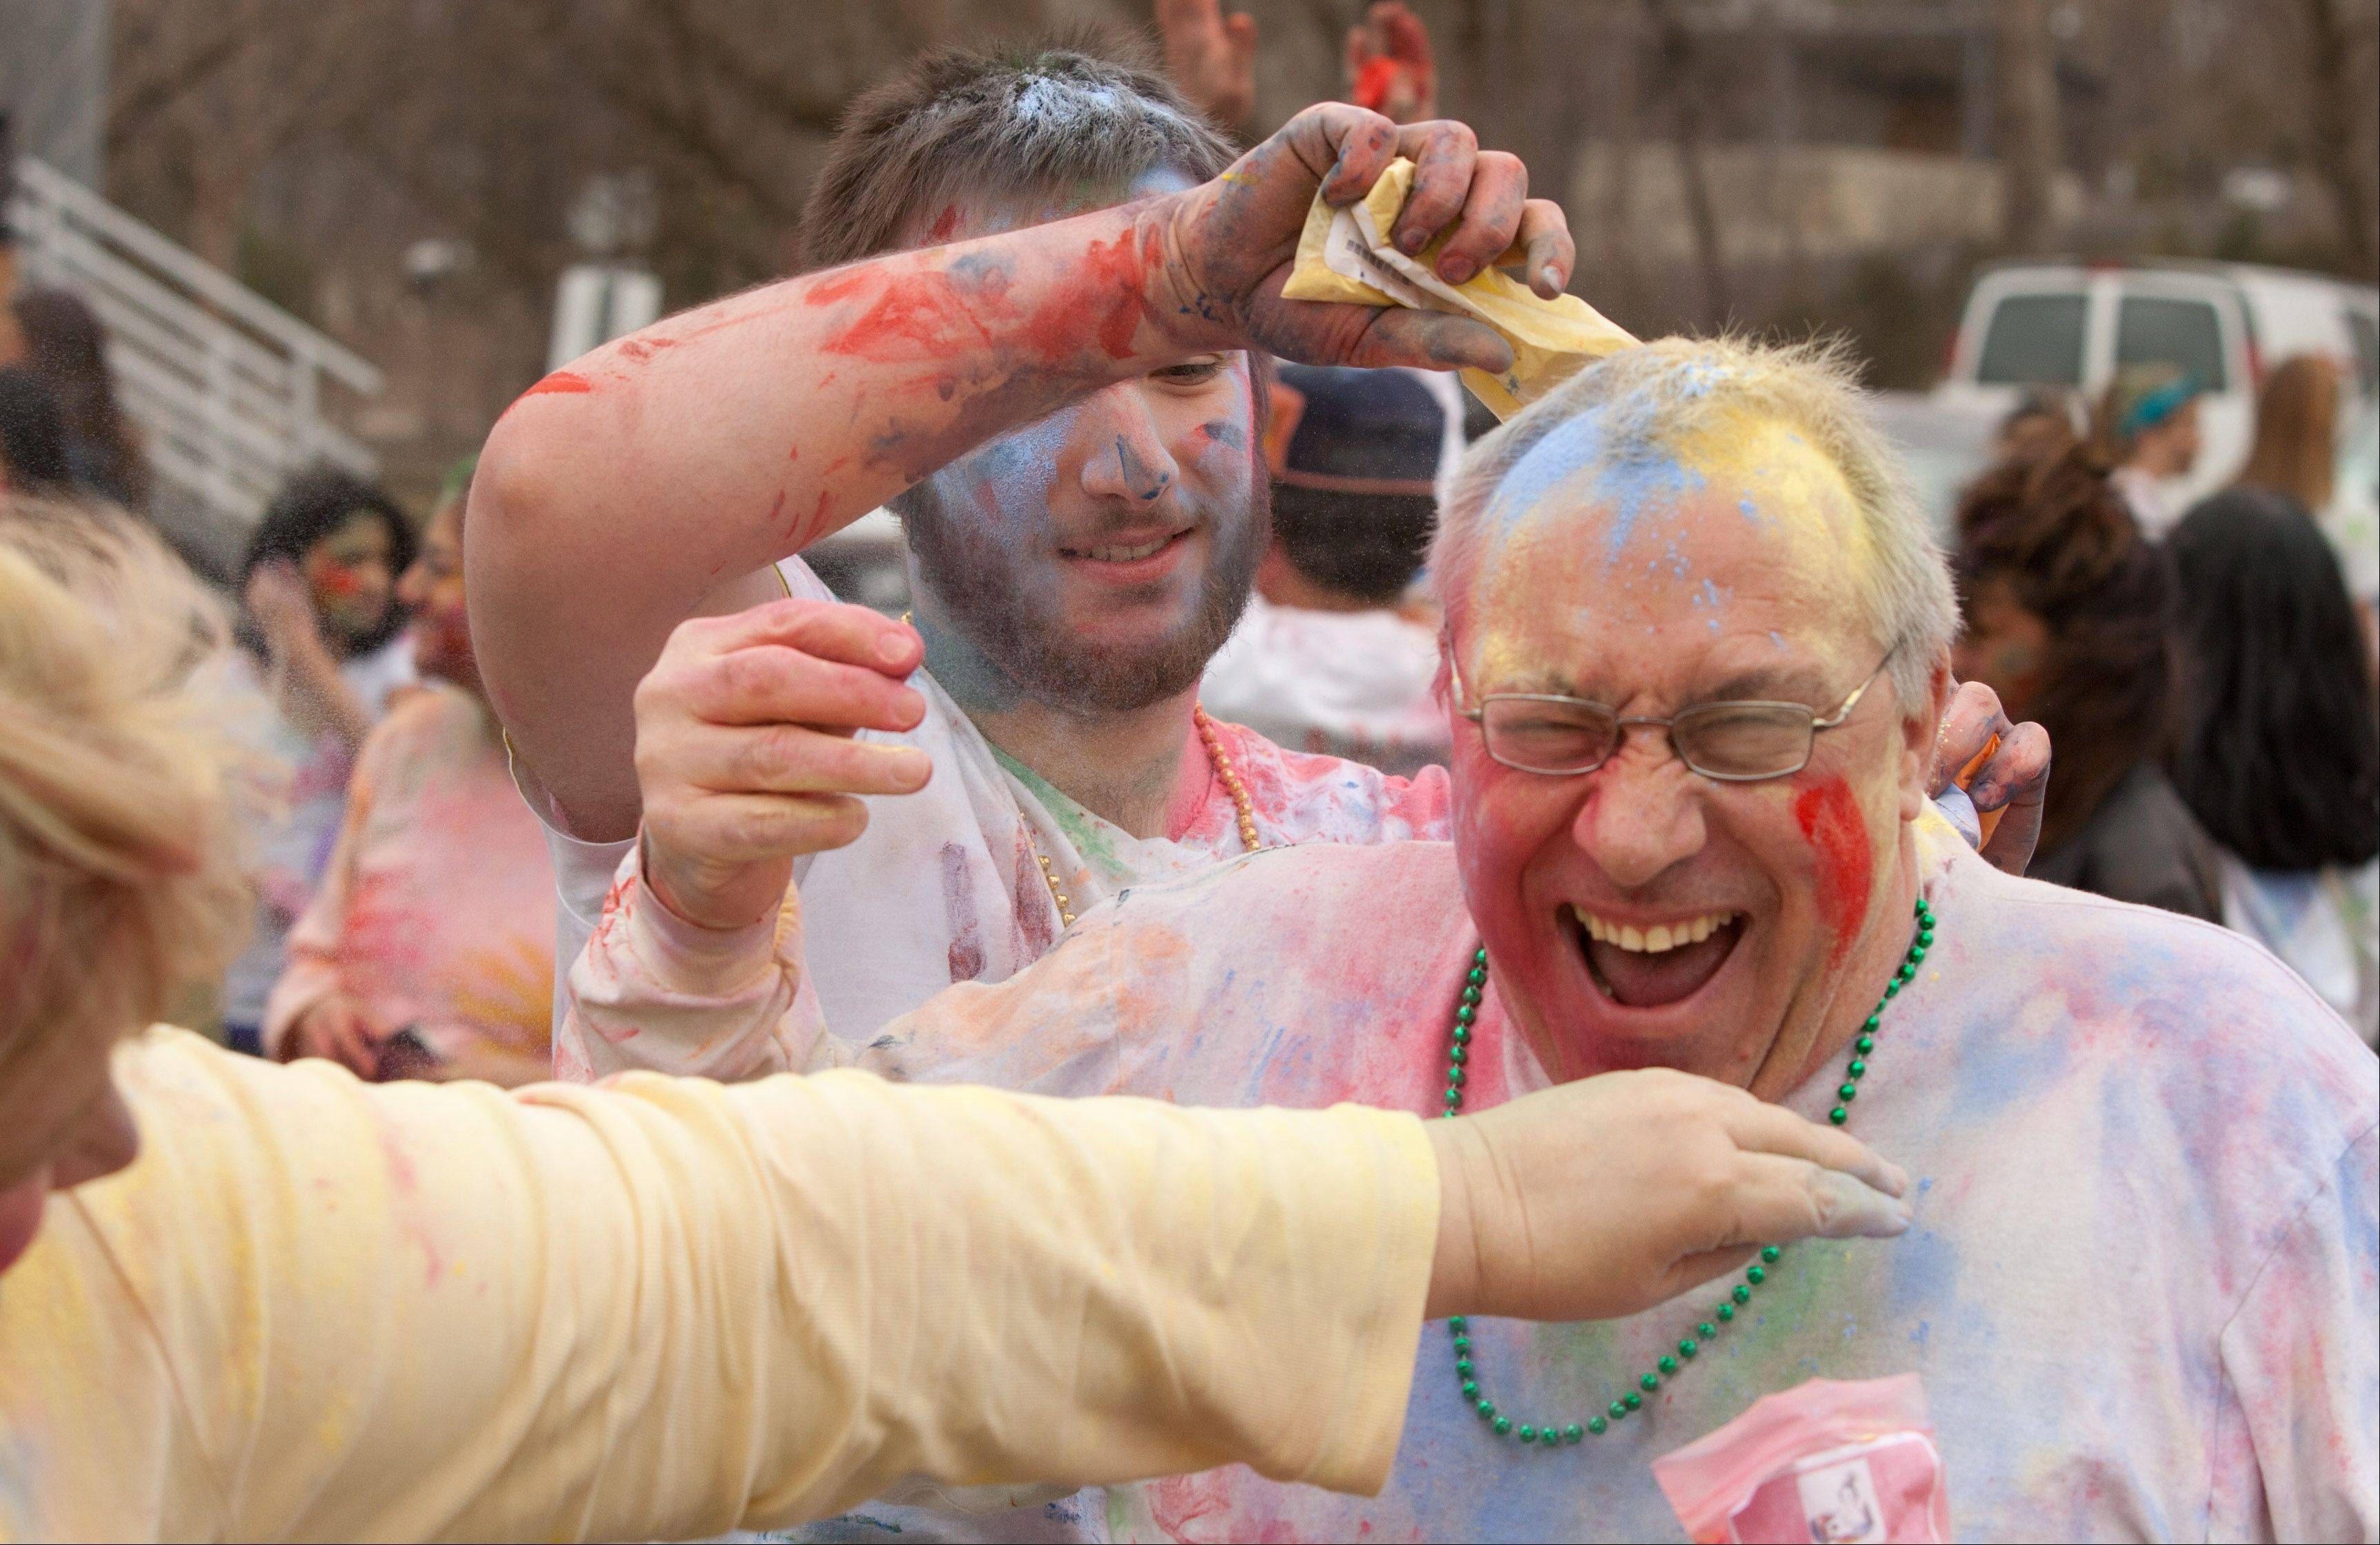 Karl Michalec of Elk Grove gets showered in yellow flour by his son, Ian, and wife, Jeanie, on Saturday in Naperville during the Simply Vedic Cultural Society's Festival of Colors, a celebration of the Hindu festival that marks the passing of winter and arrival of spring.